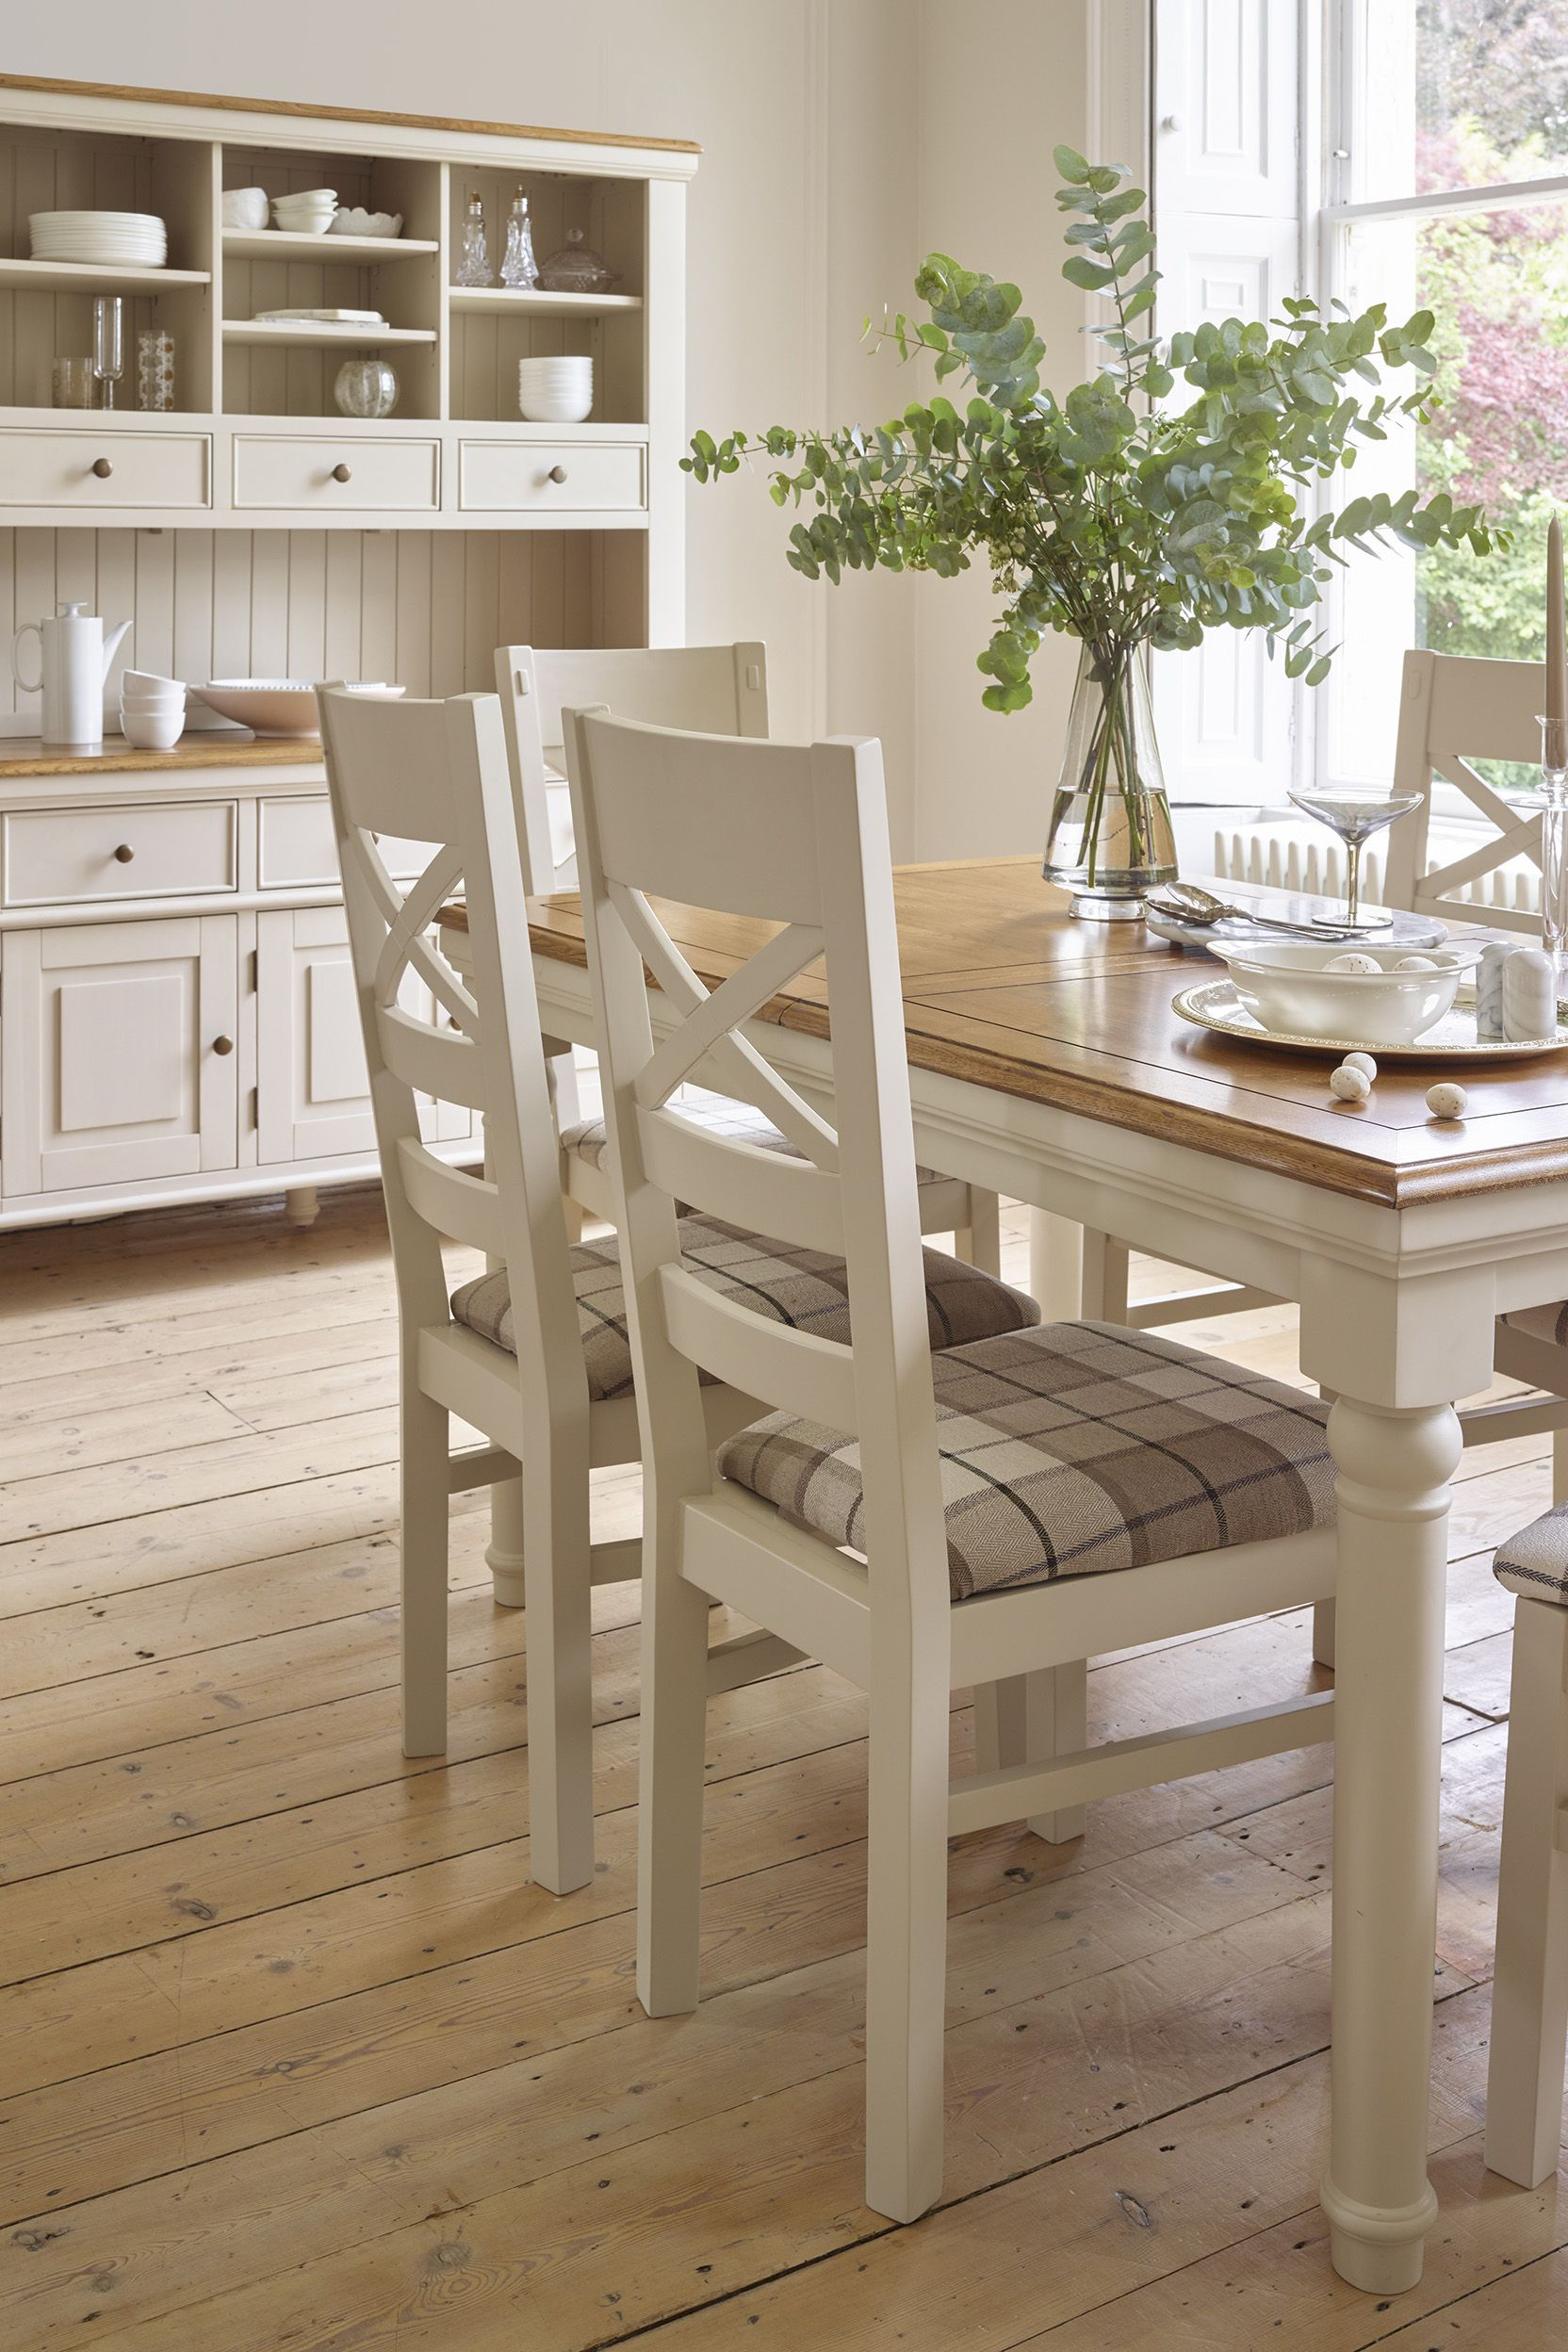 This Beautiful Extendable Dining Table Has All The Design Hallmarks Of Our Painted Shay Range As Well As Oak Dining Room Dining Table Gold Oak Furniture Land